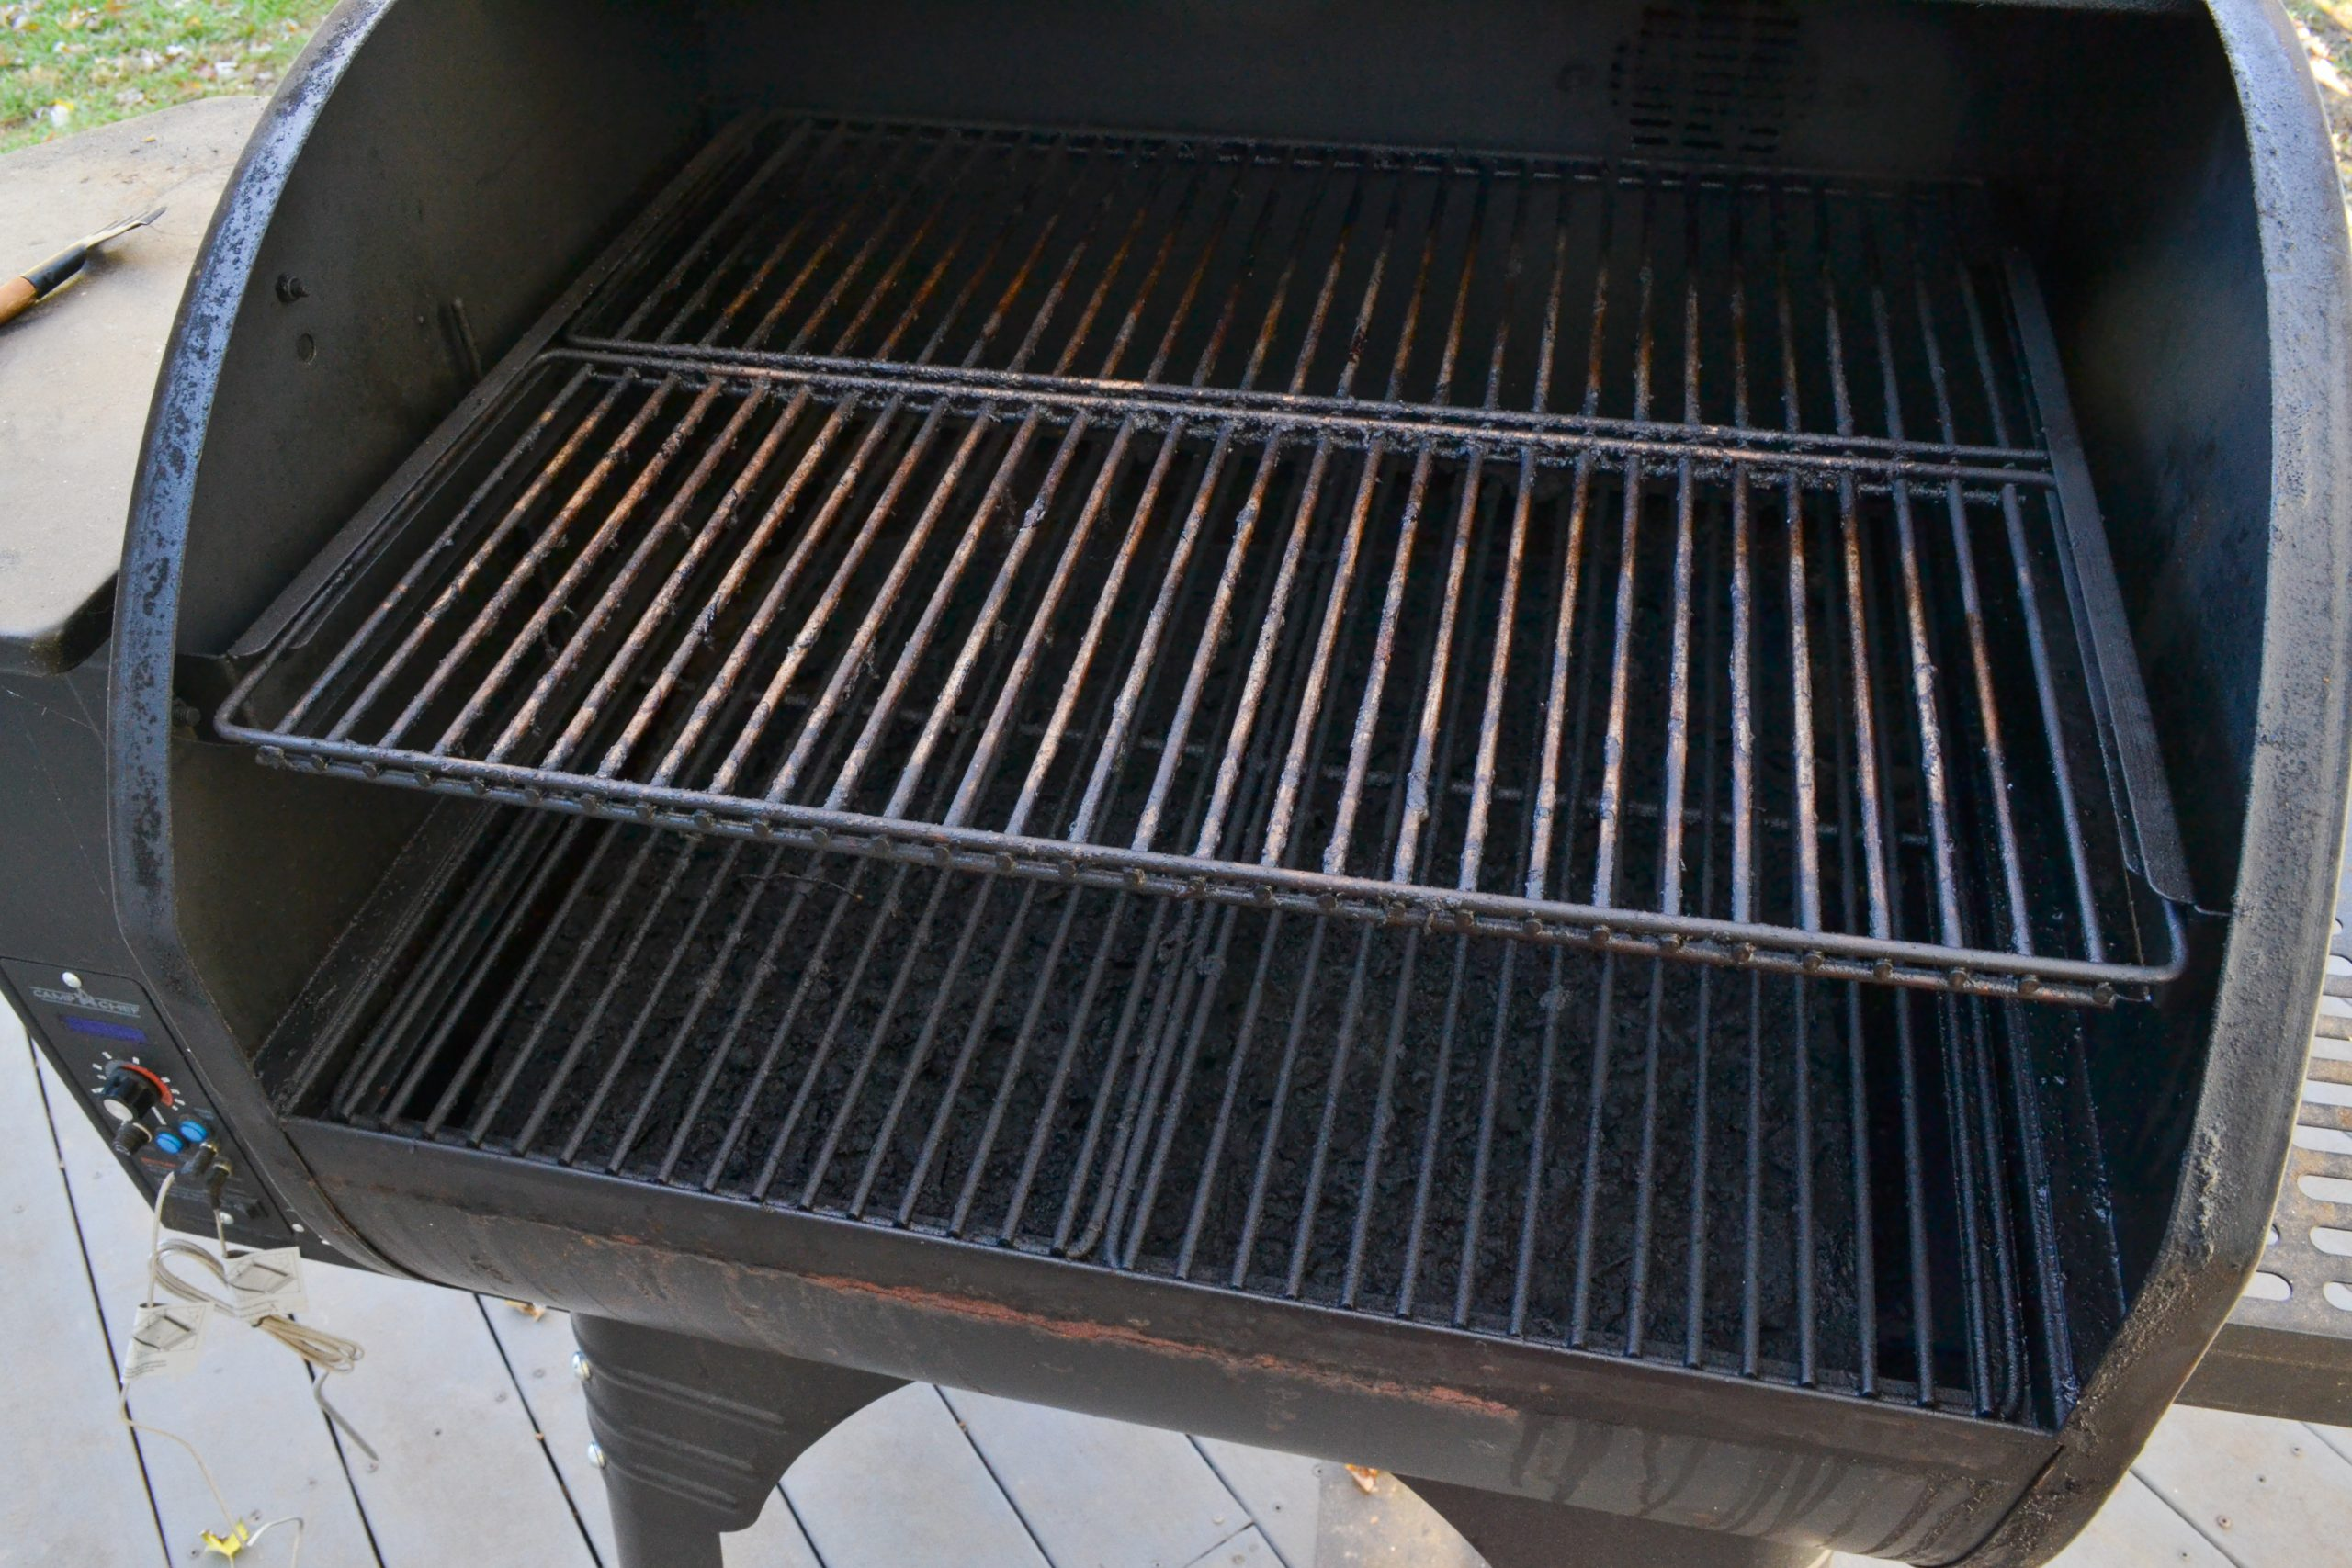 Camp Chef Pellet Smoker BEFORE cleaning